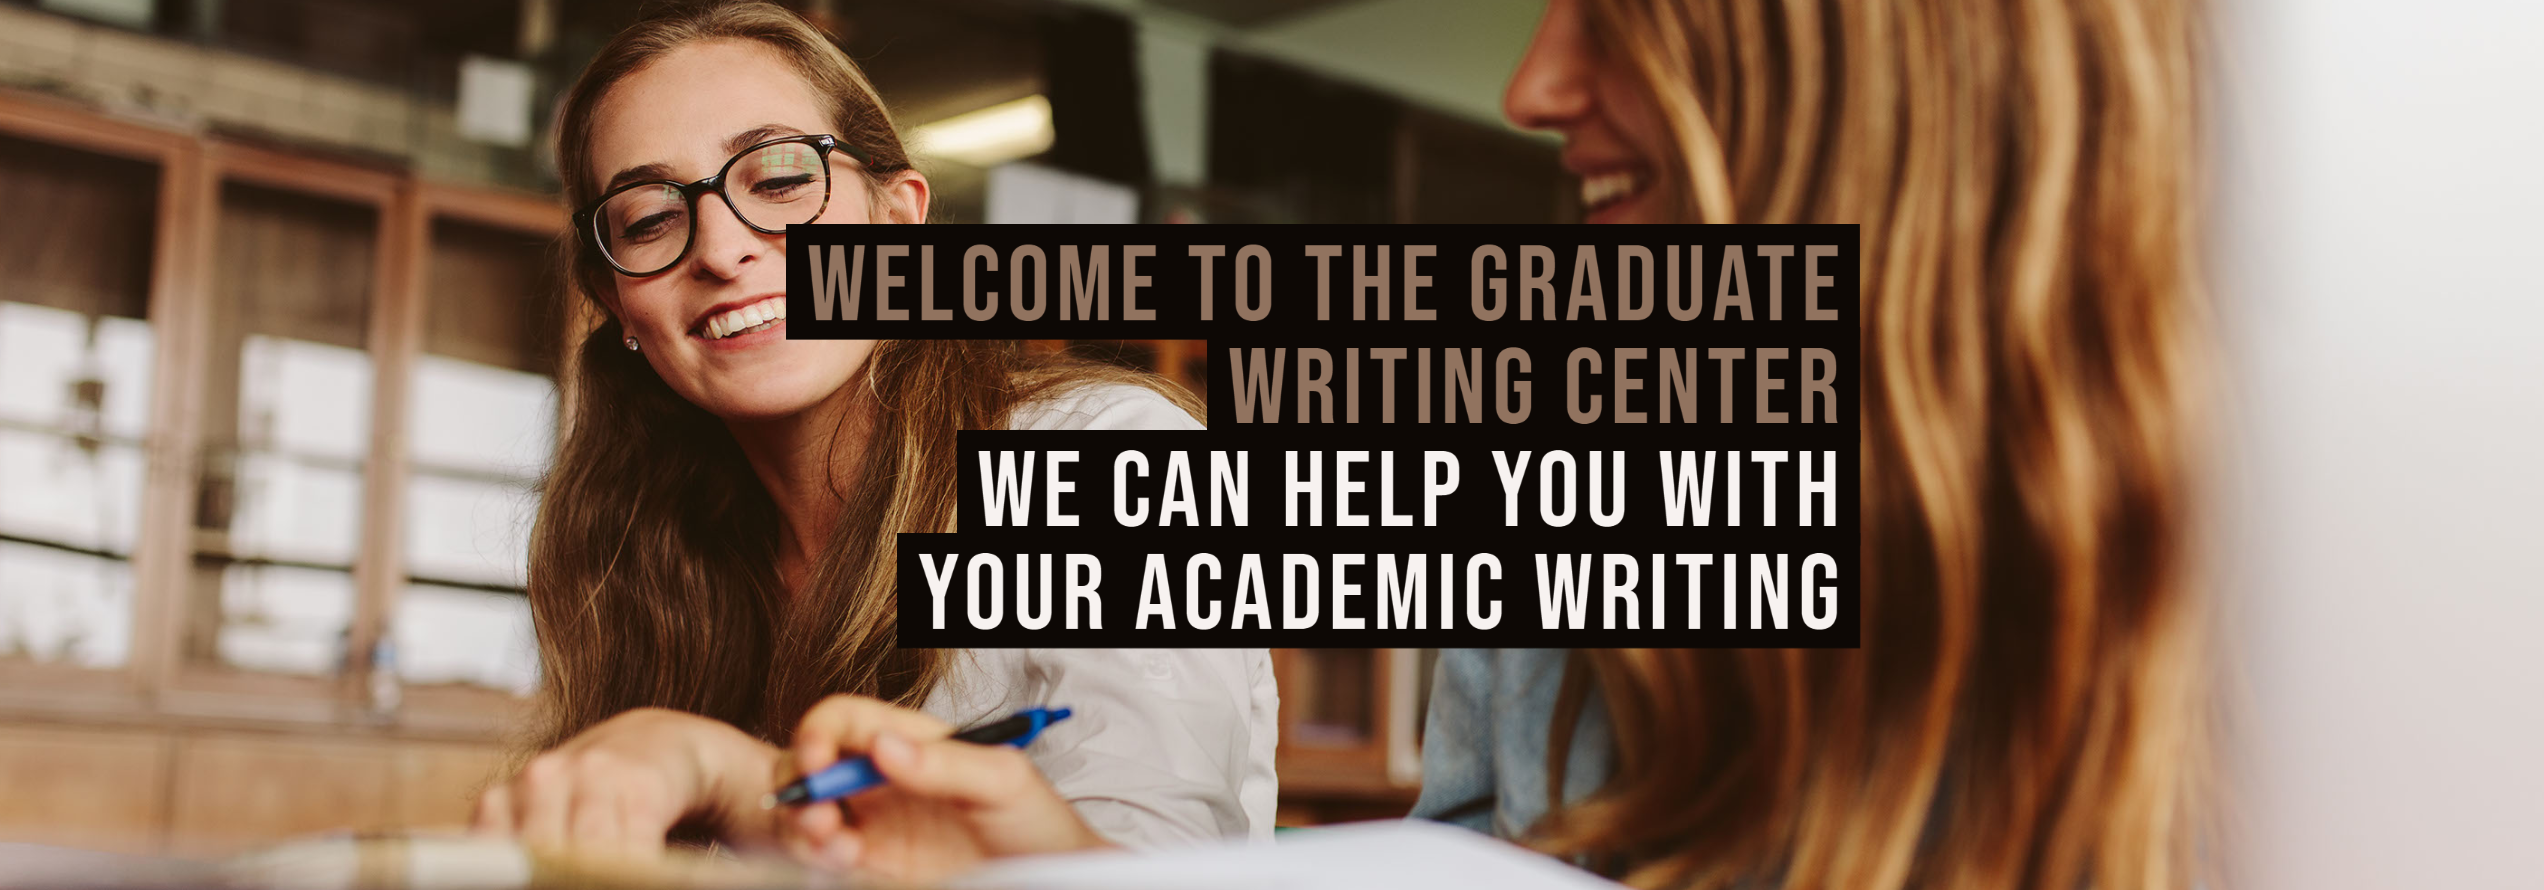 Welcome to the Graduate Writing Center. We can help you with your academic writing.